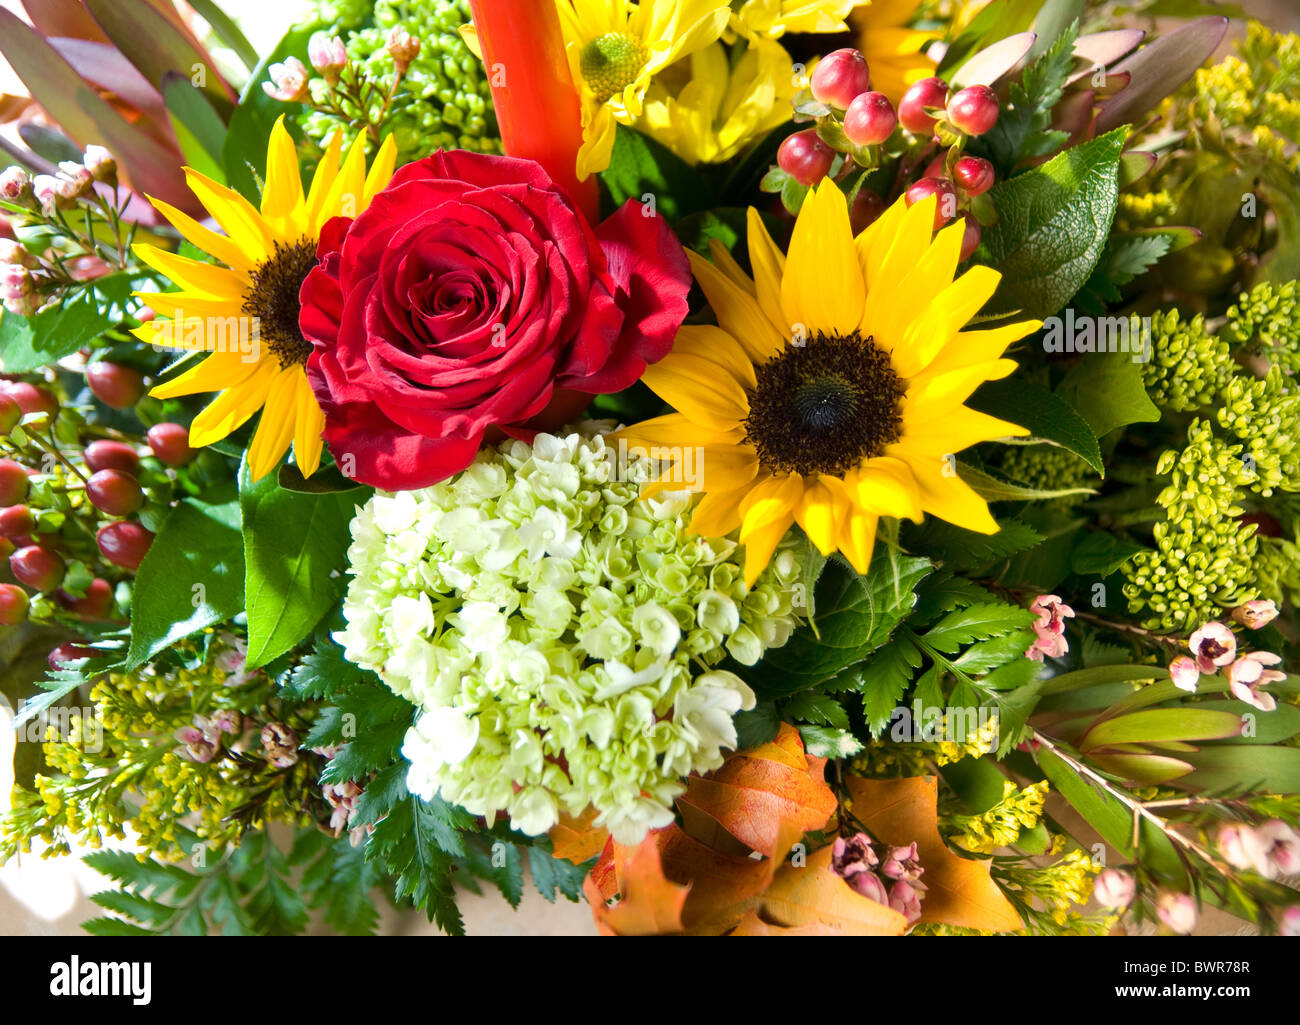 Fall flowers bouquet stock photos fall flowers bouquet stock a fall bouquet of flowers stock image izmirmasajfo